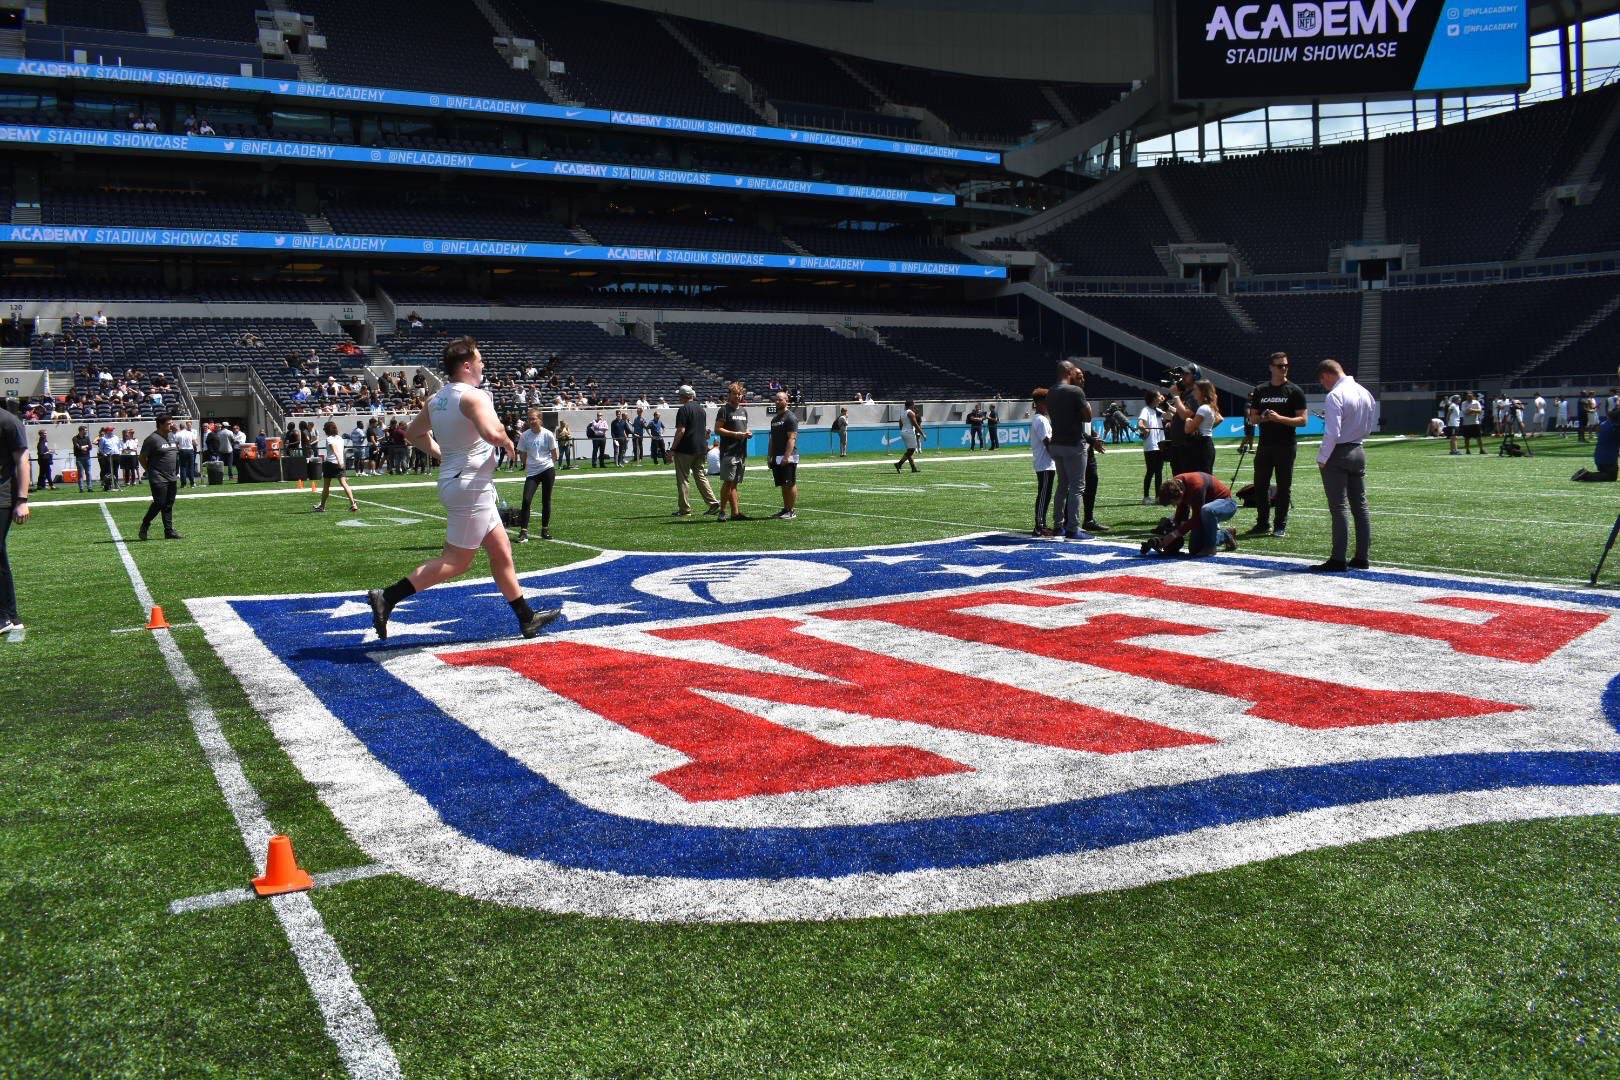 NFL Players and Media Excited about the NFL Academy